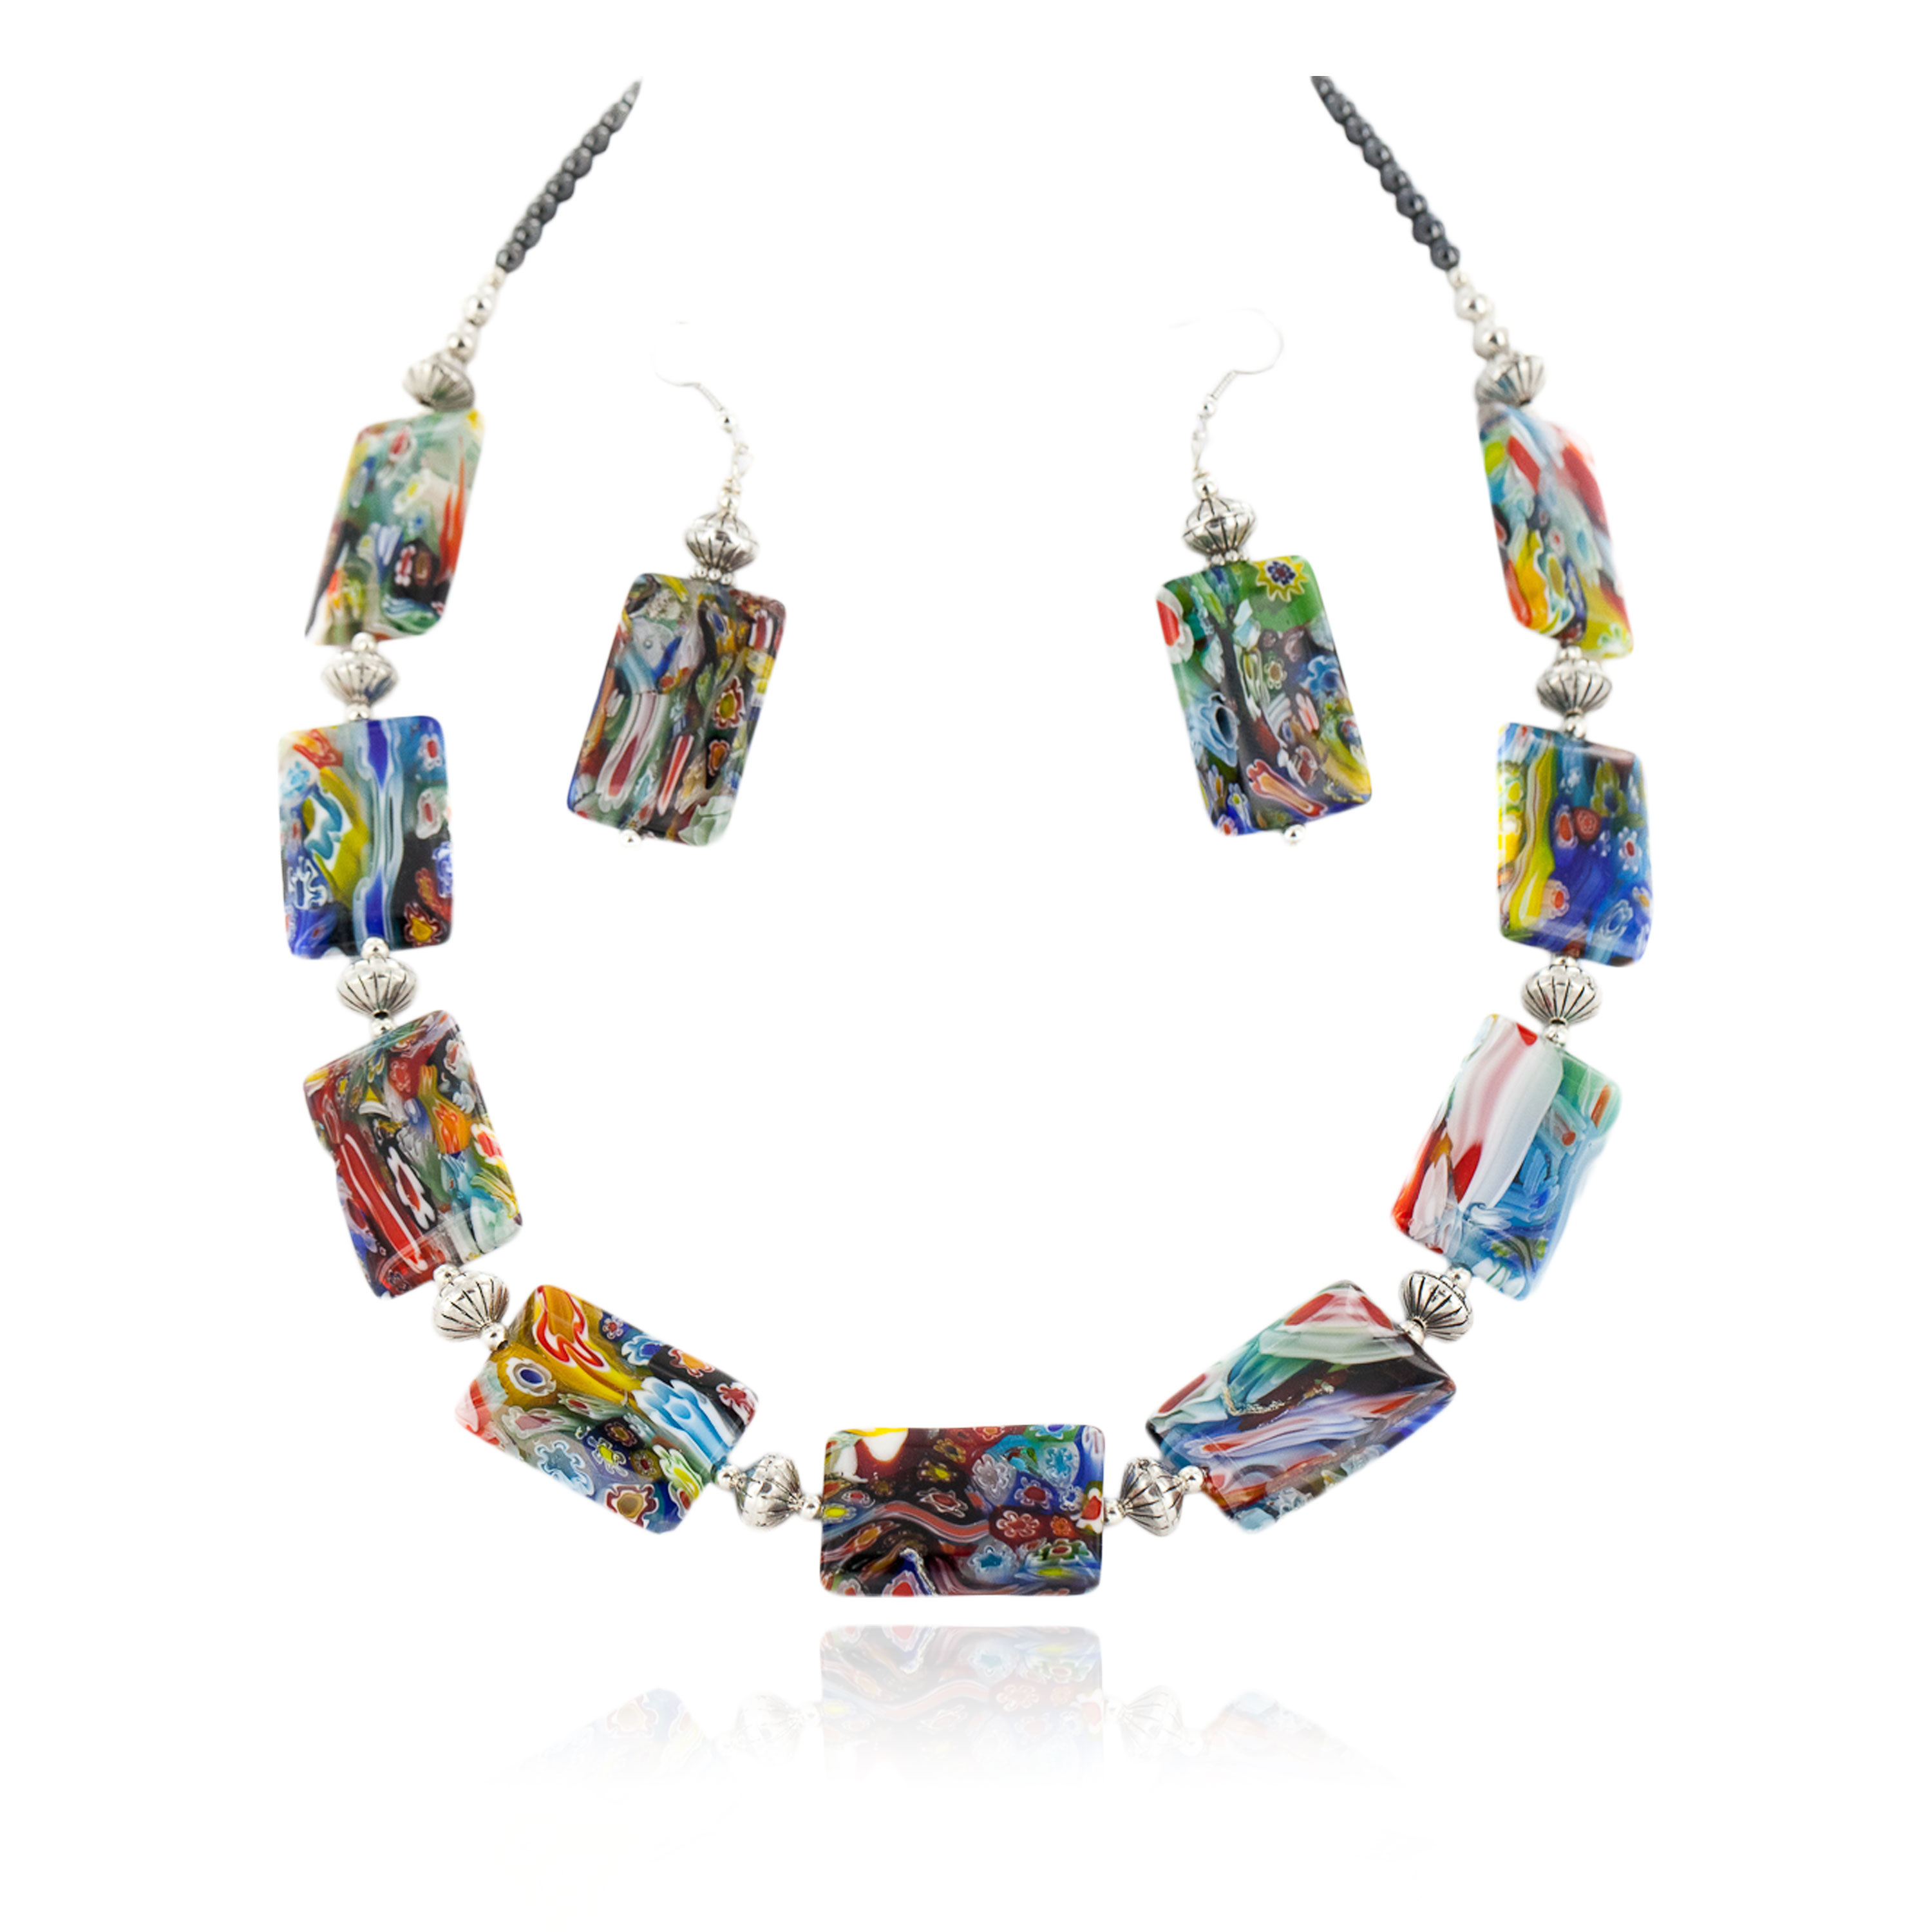 Certified Authentic Navajo .925 Sterling Silver Multicolor Glass Natural Hematite Set 17057 Sets NB160113214134 17057 (by LomaSiiva)